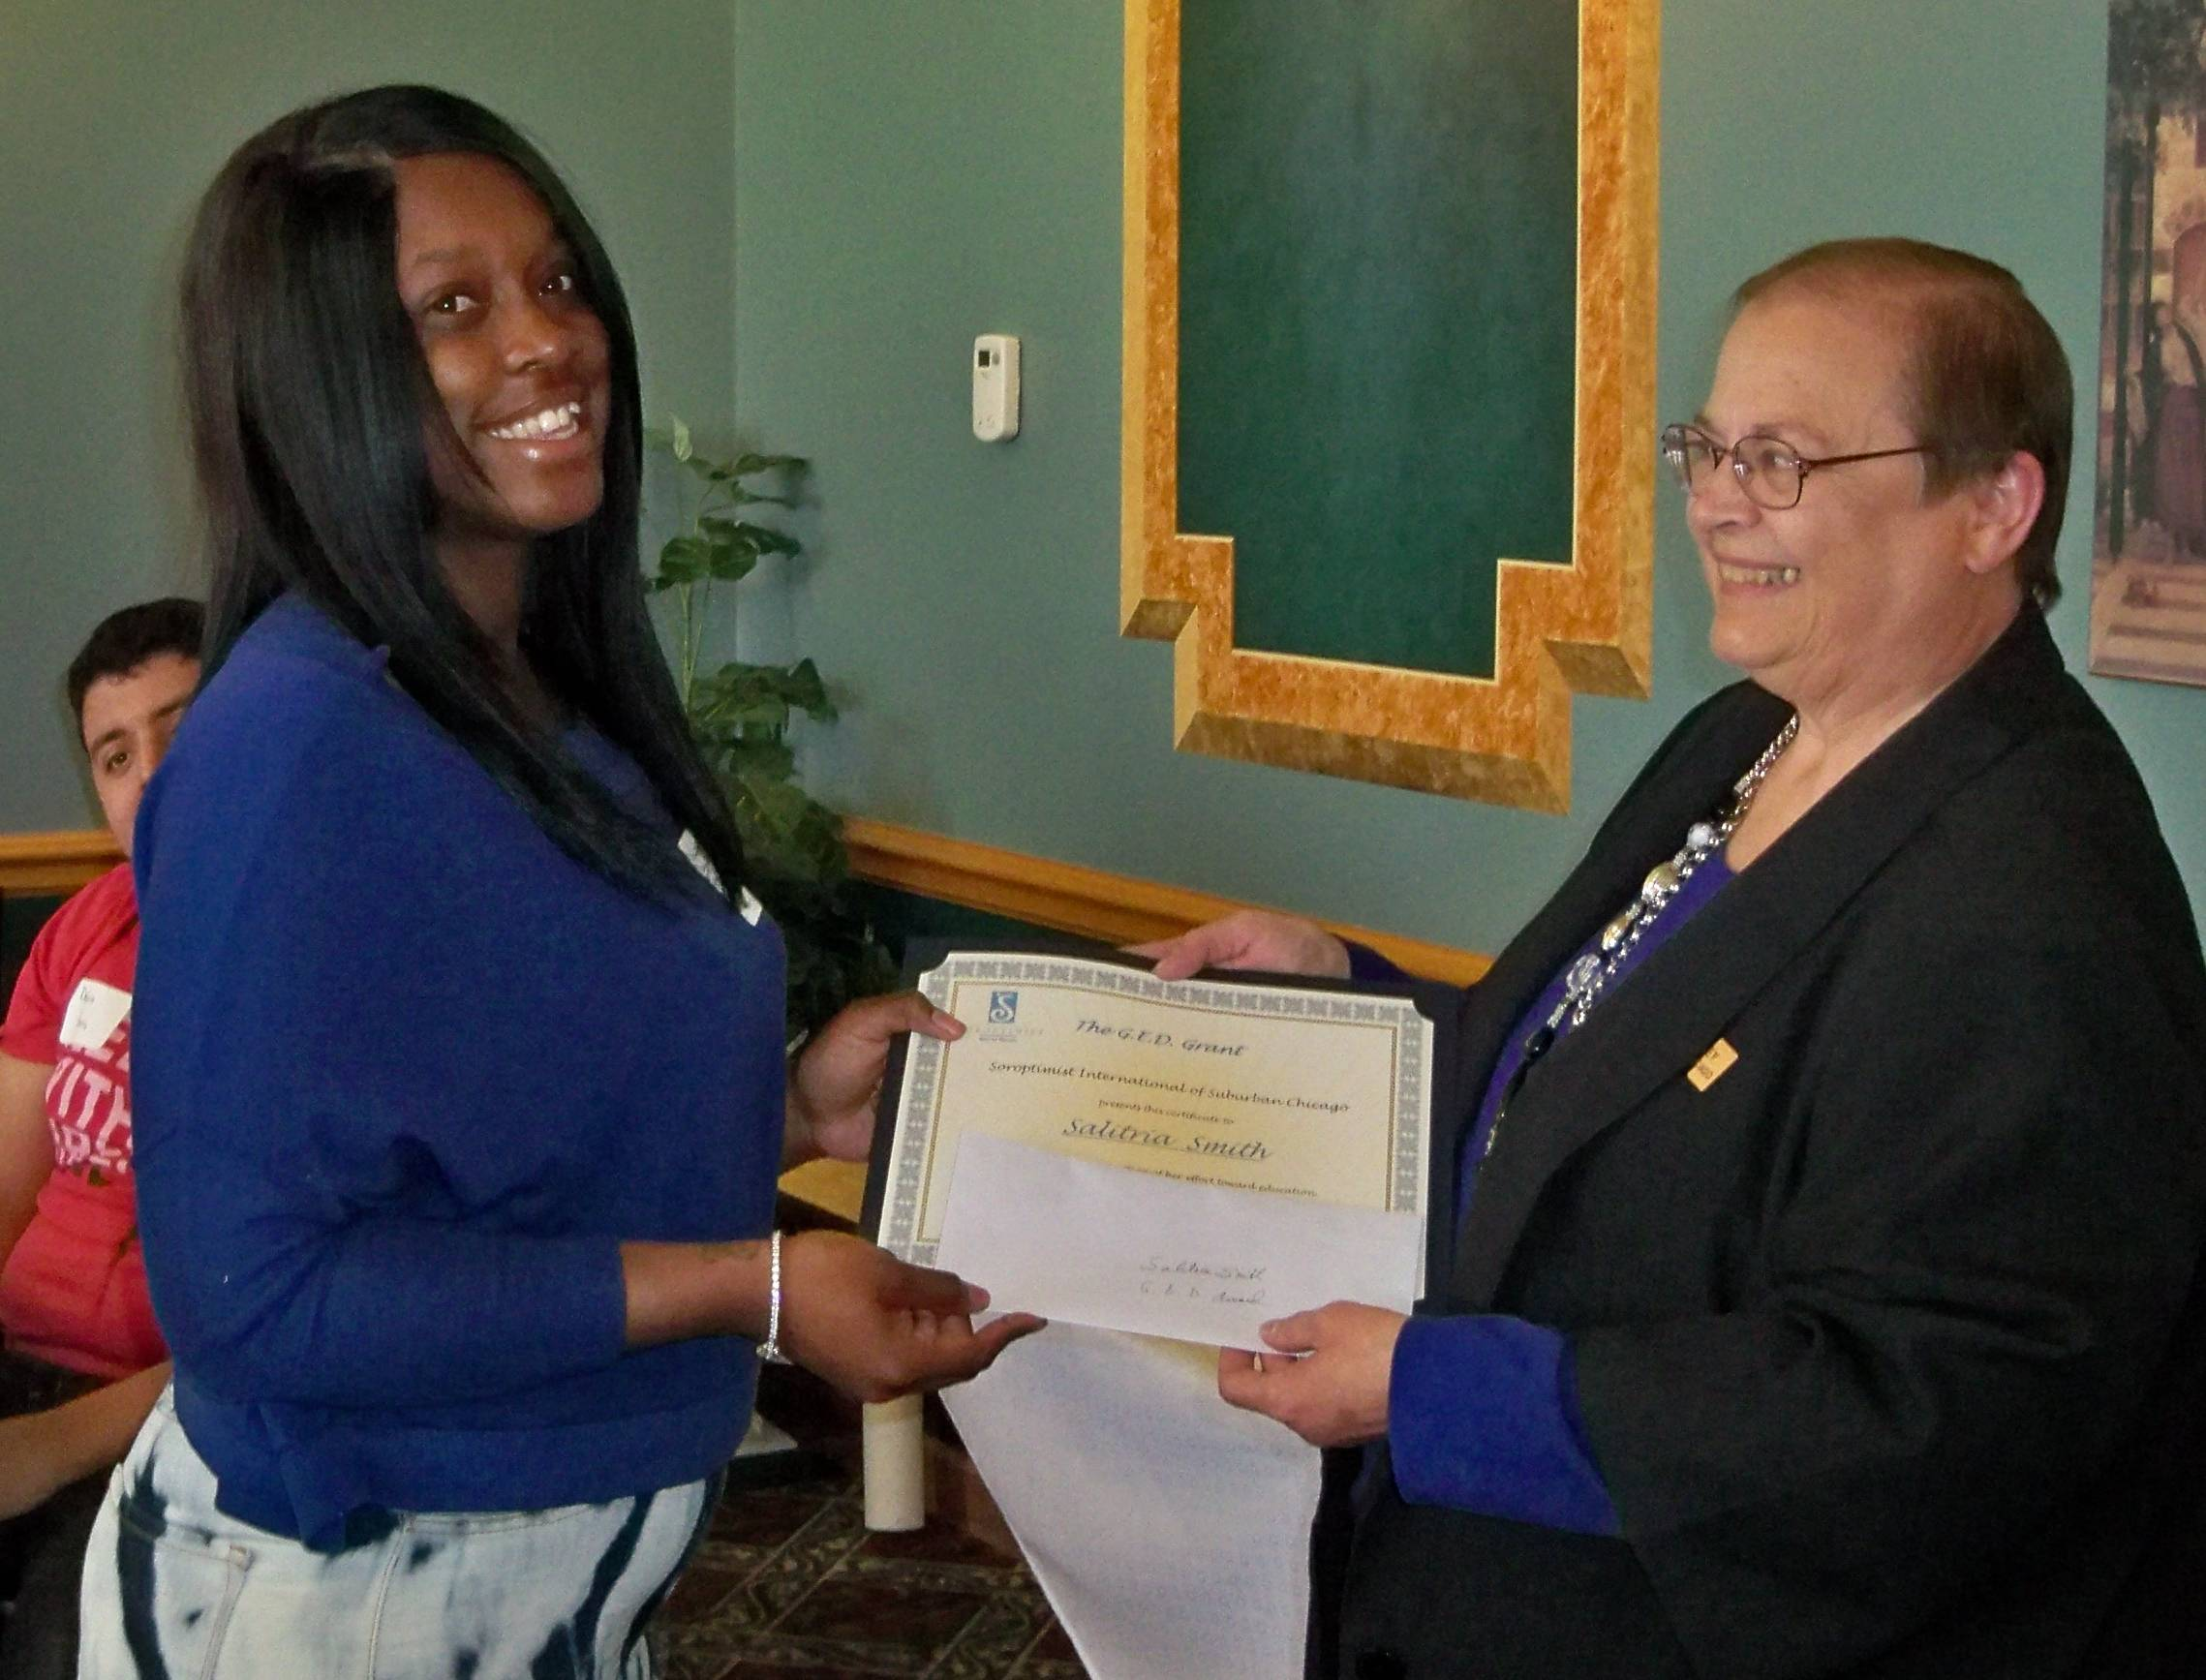 Salitria Smith (left) of Aurora accepting the SISC GED Grant from Diane Kegley, President - SI of Suburban ChicagoDiane Kegley